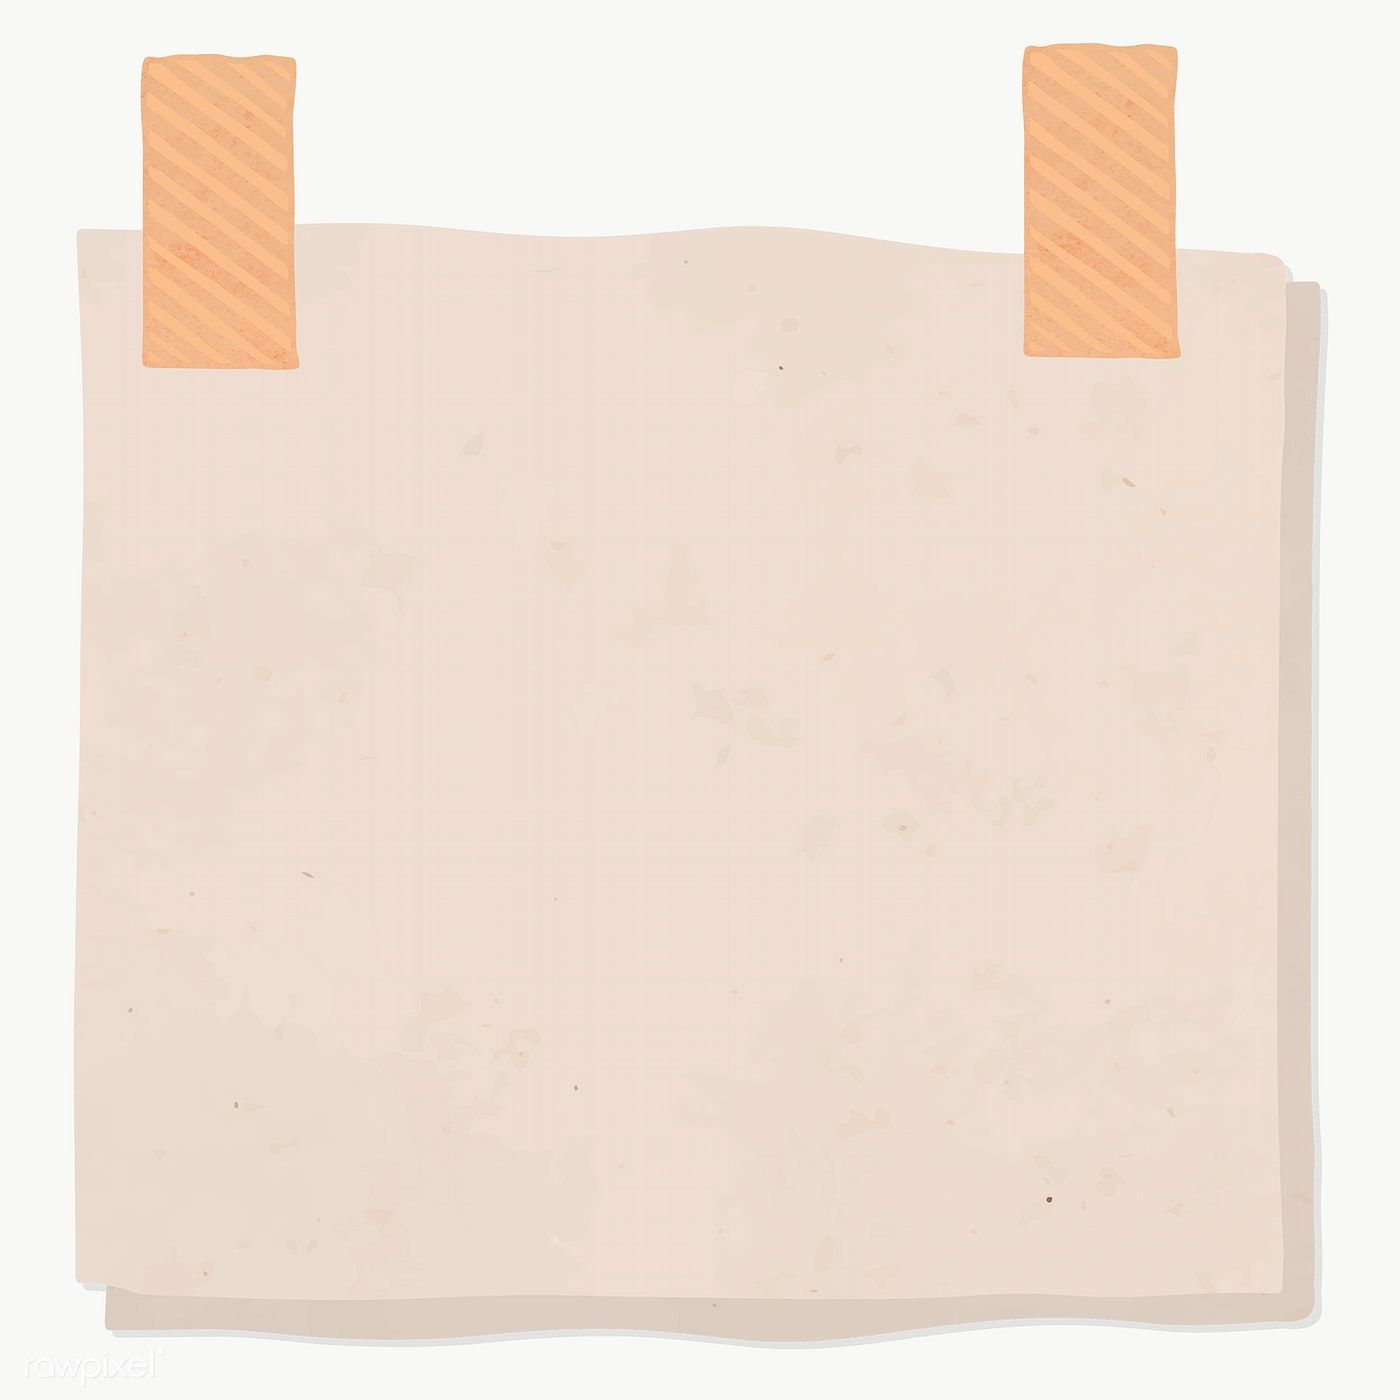 Blank Reminder Paper Note Transparent Png Premium Image By Rawpixel Com Sasi Note Paper Note Doodles Paper Background Texture